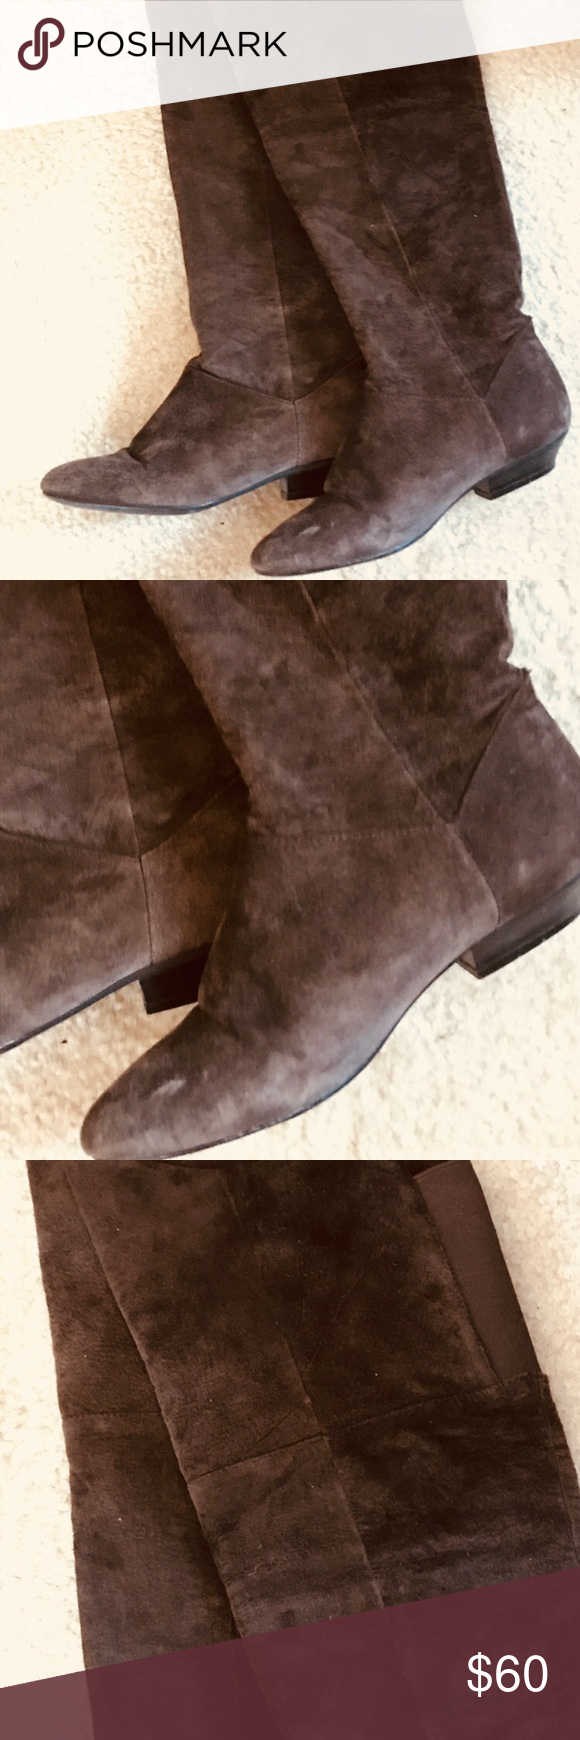 317e826ed27 Chinese laundry celebrity loved over the knee boot in 2018